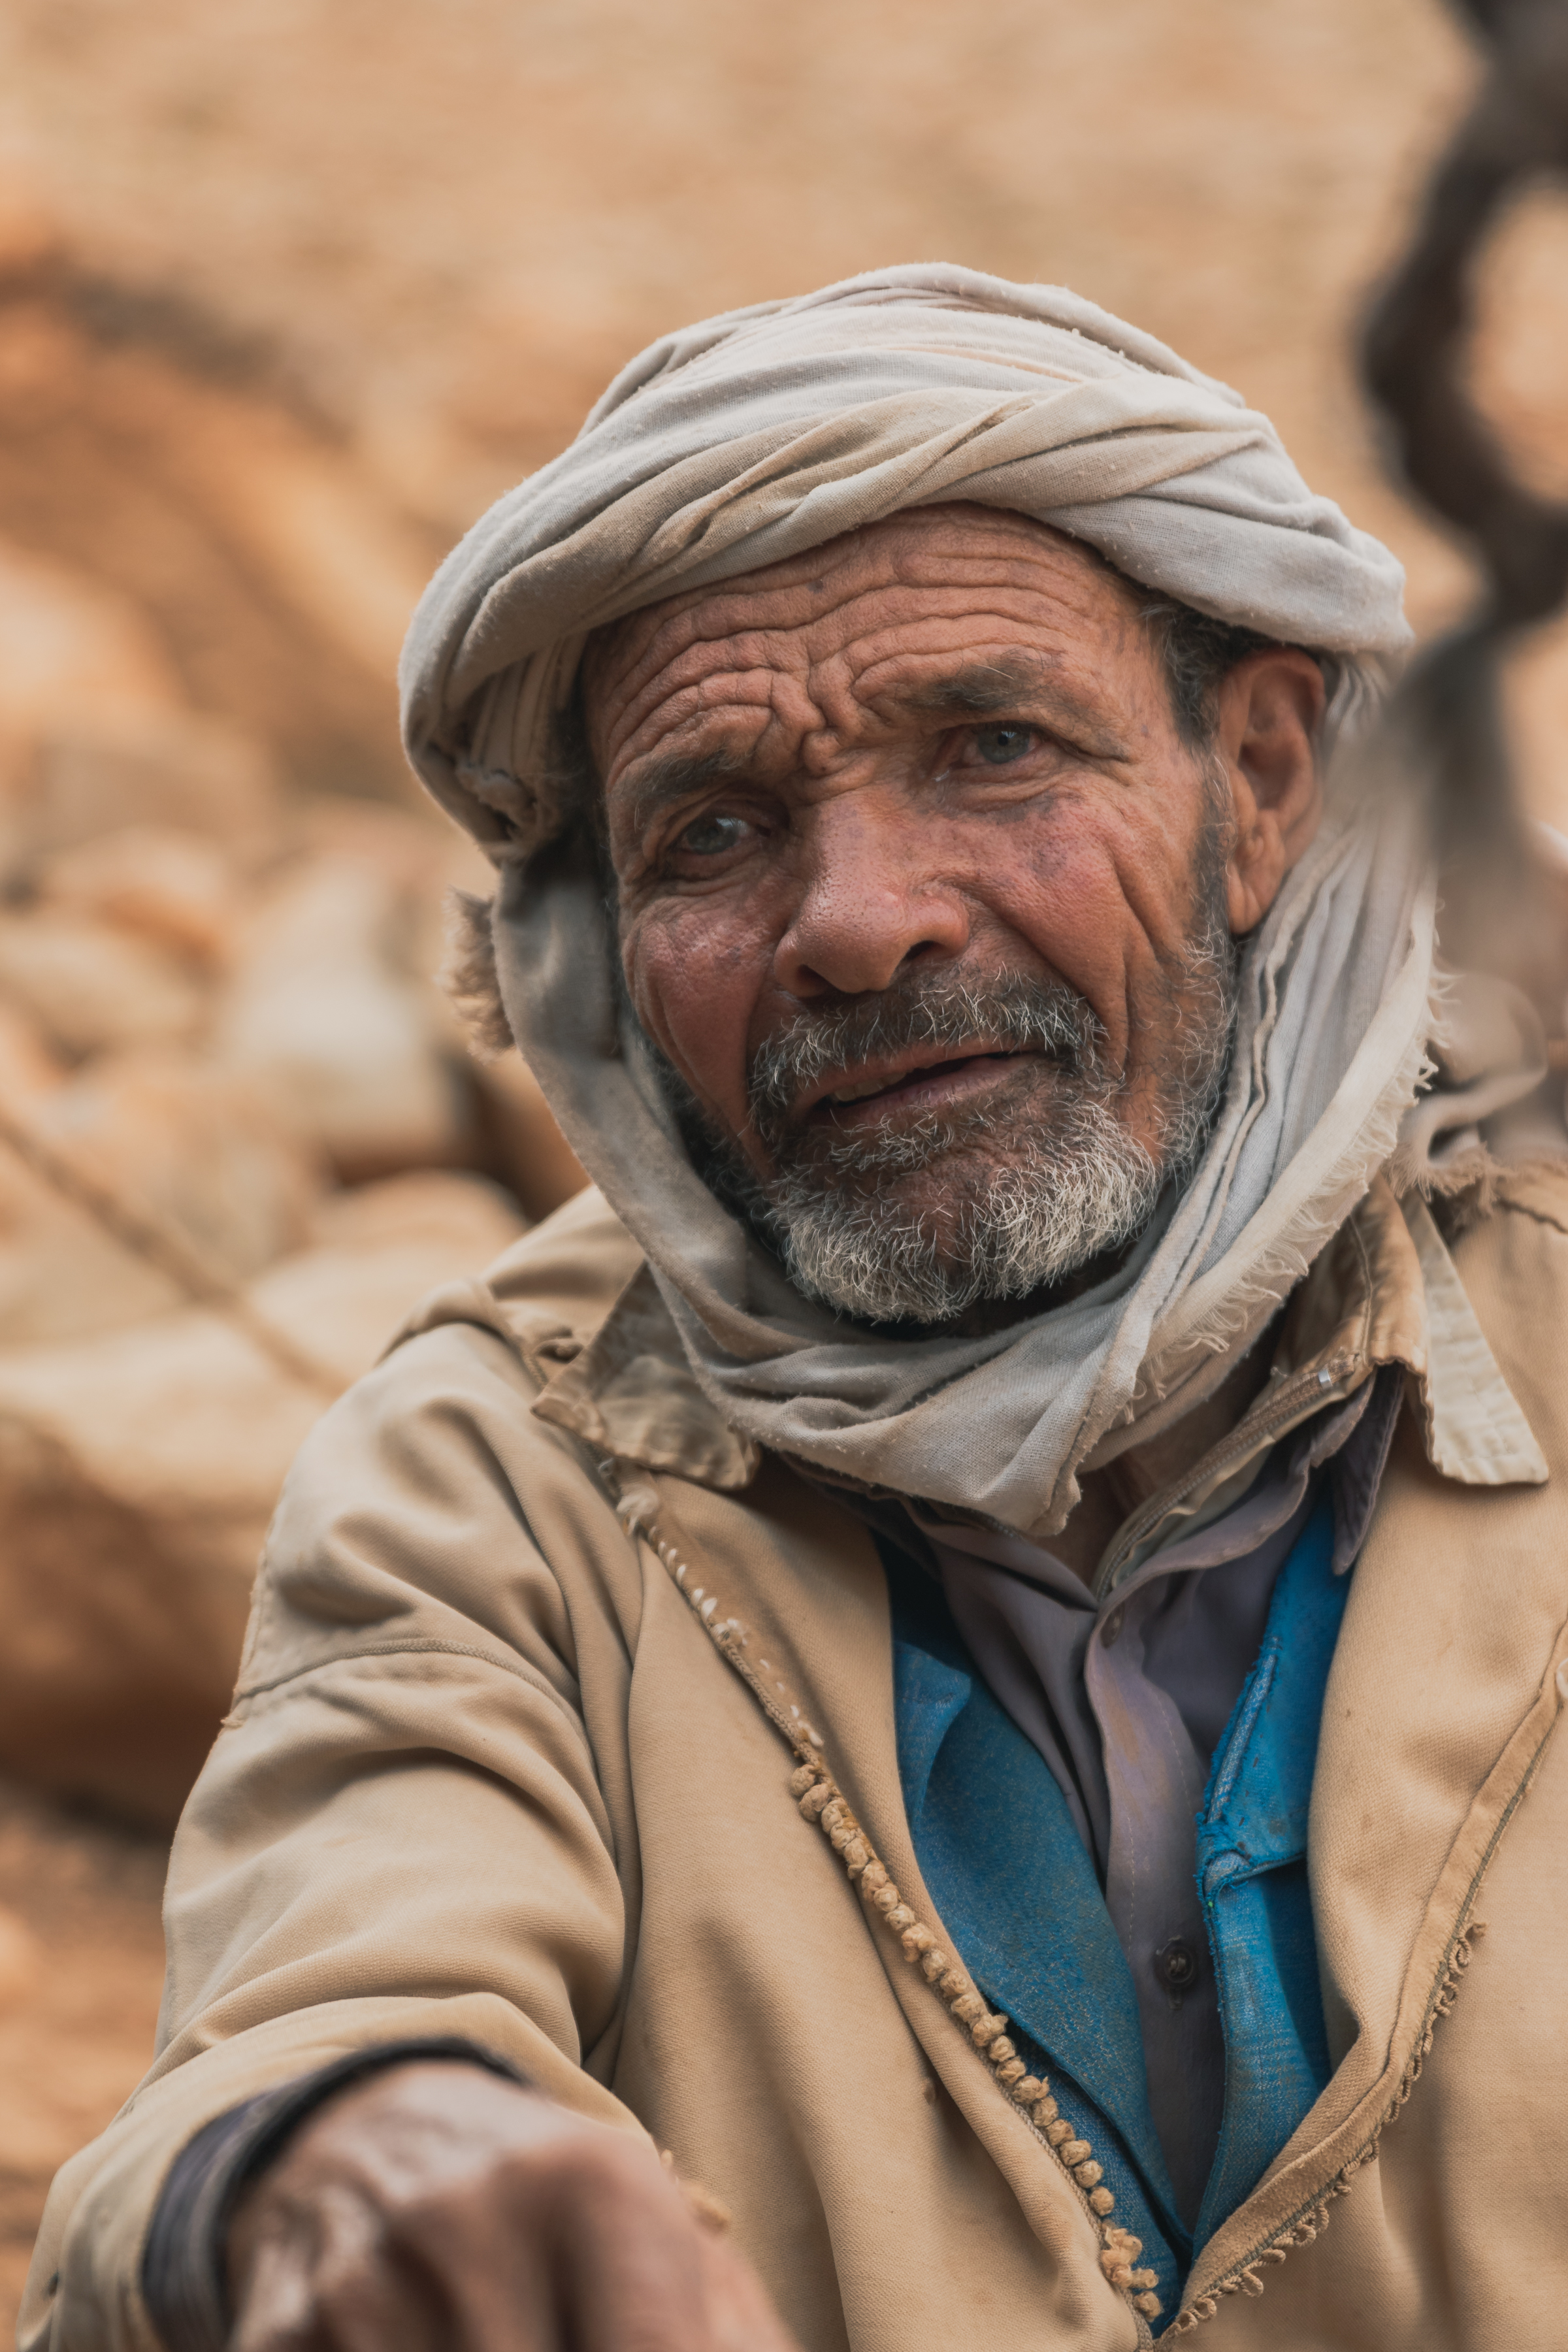 moroccan male nomad captured in a nomad village while taking a break from hiking